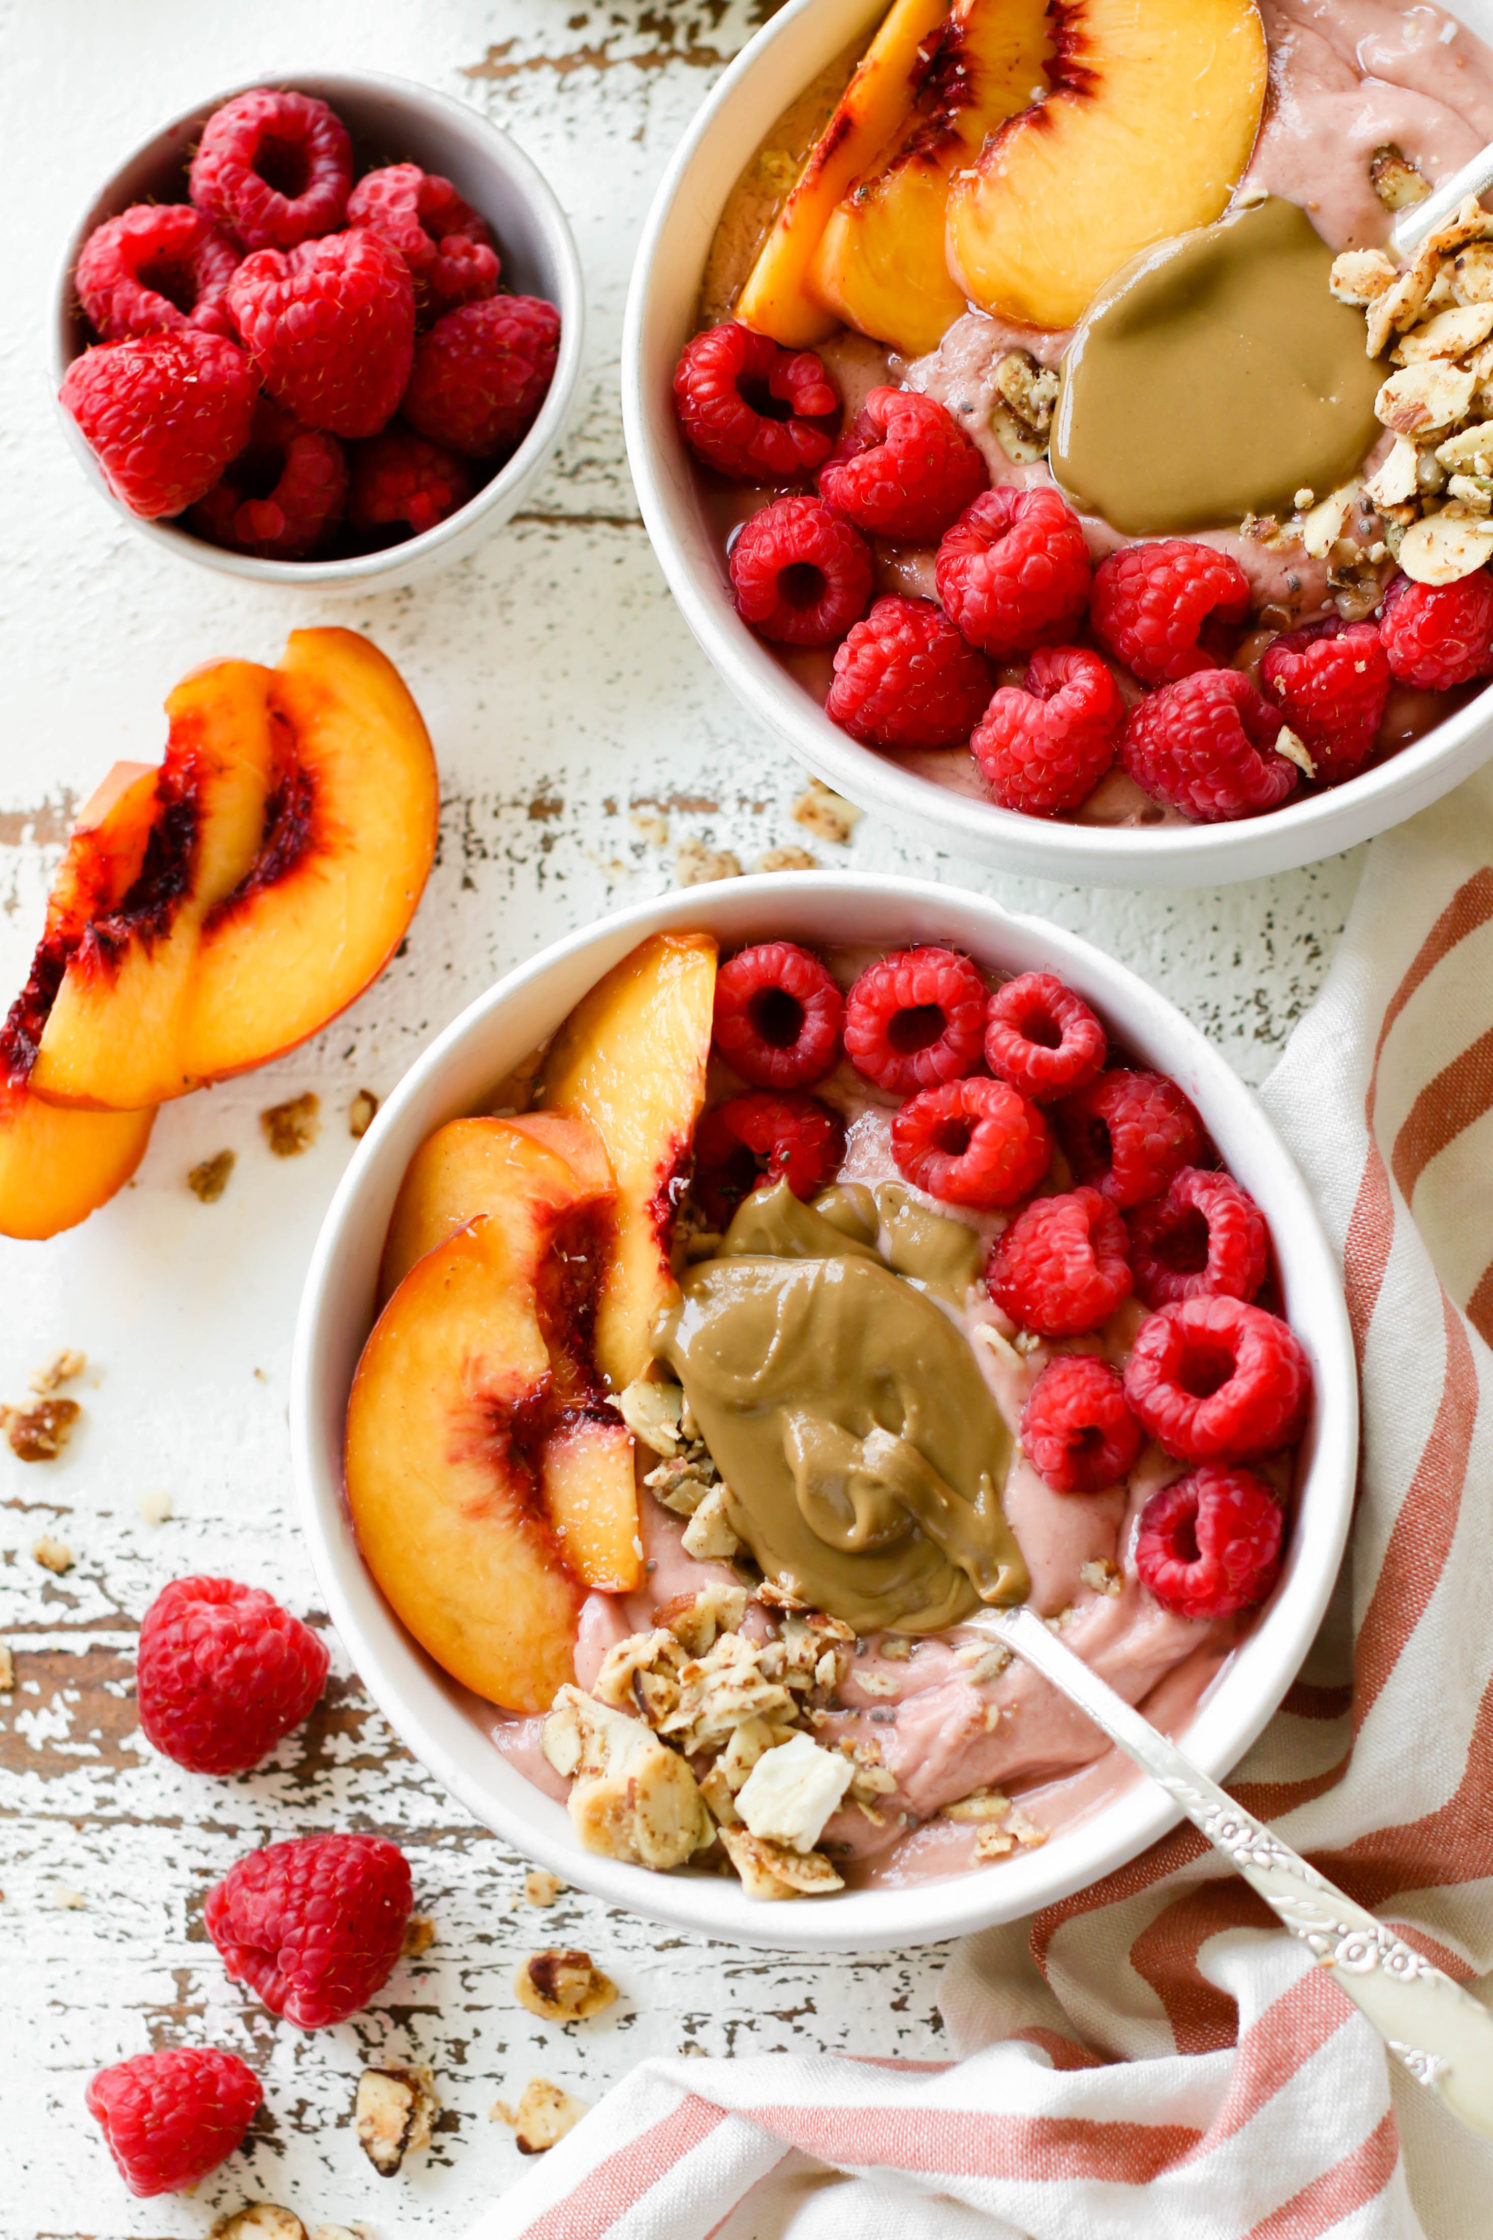 Peach Raspberry Sunbutter Smoothie Bowl by Flora & Vino